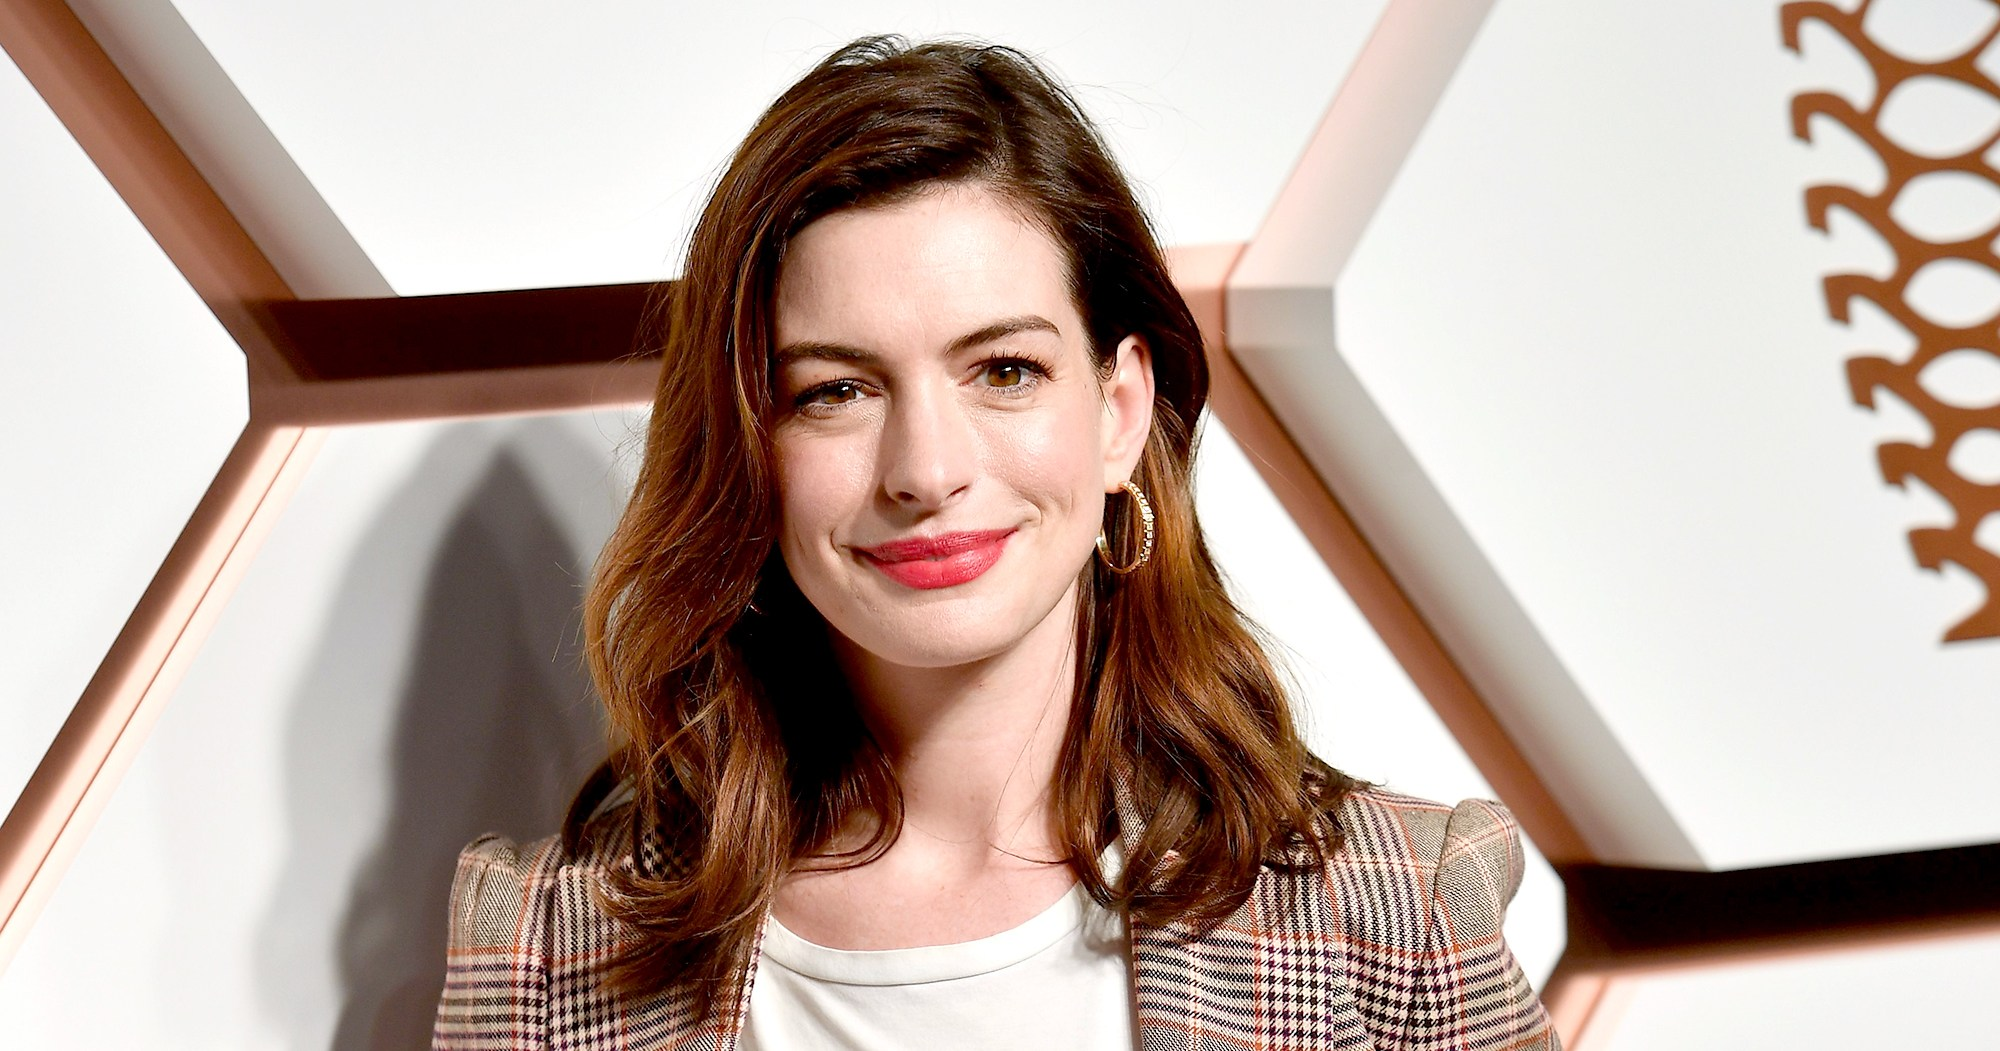 Anne Hathaway Clarifies Her Drinking Was Not 'a Problem'